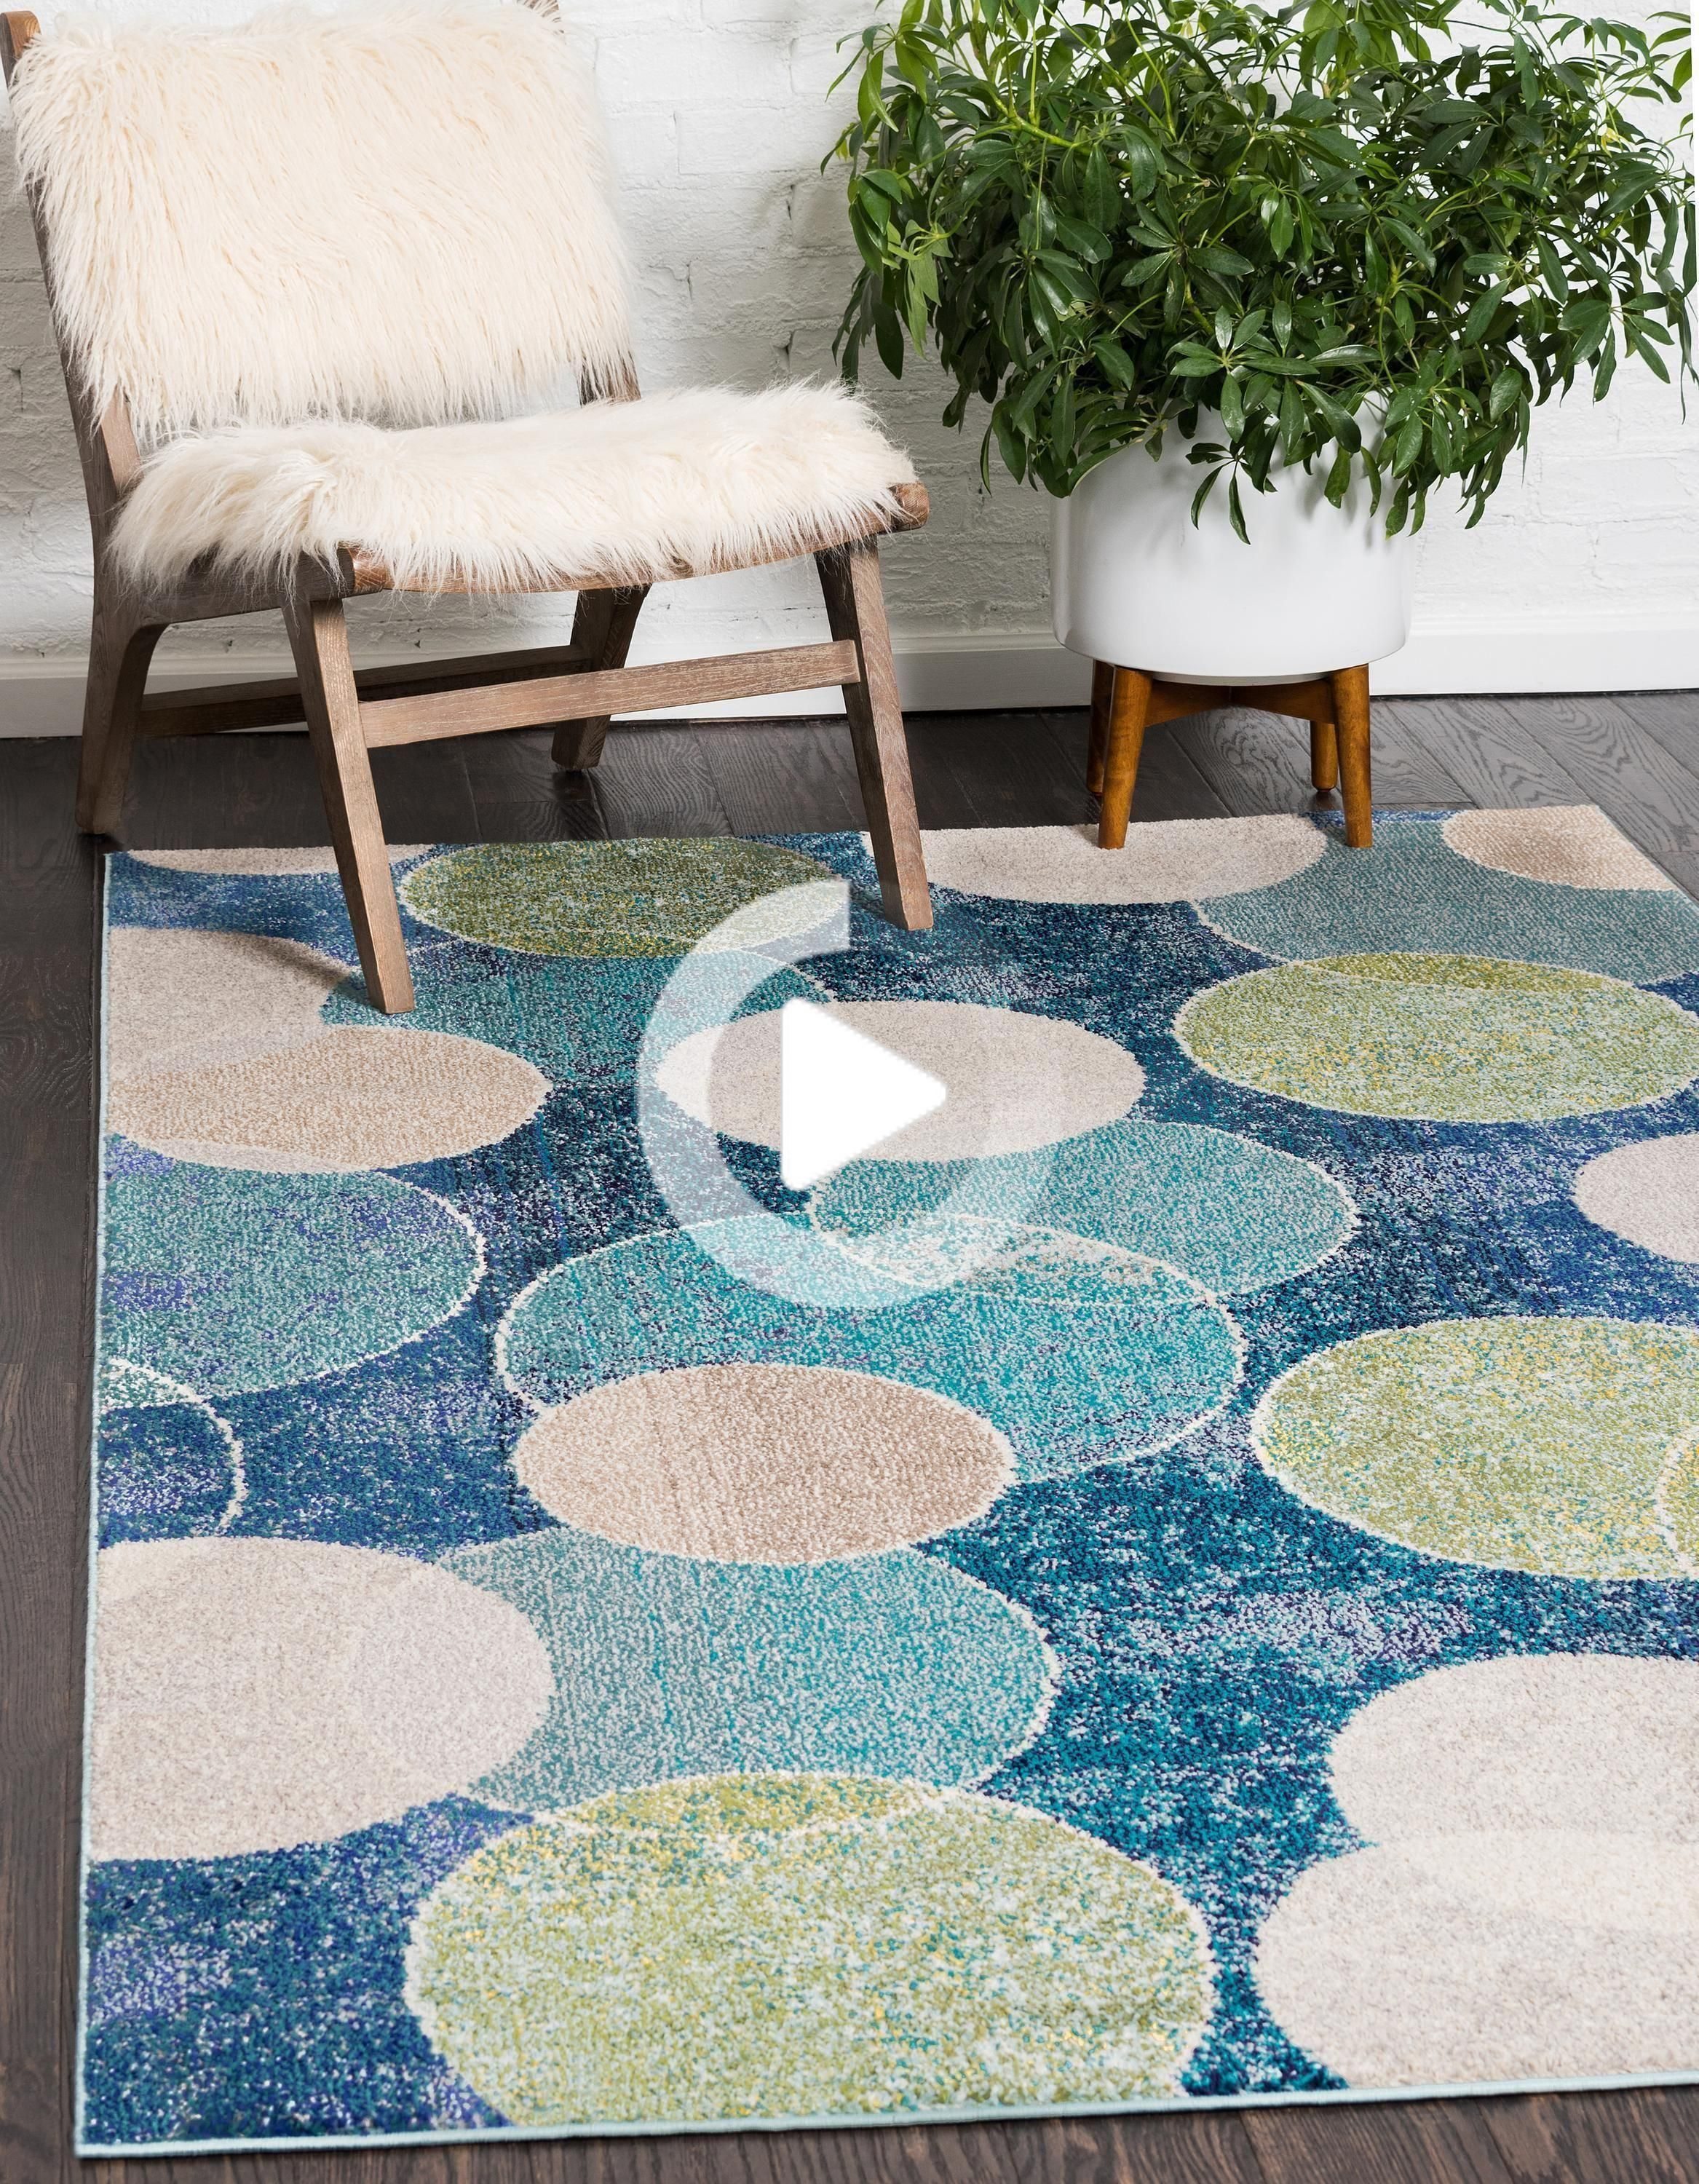 Otto Tapis Cercle Kreismuster Teppich Wohnzimmer Farbe